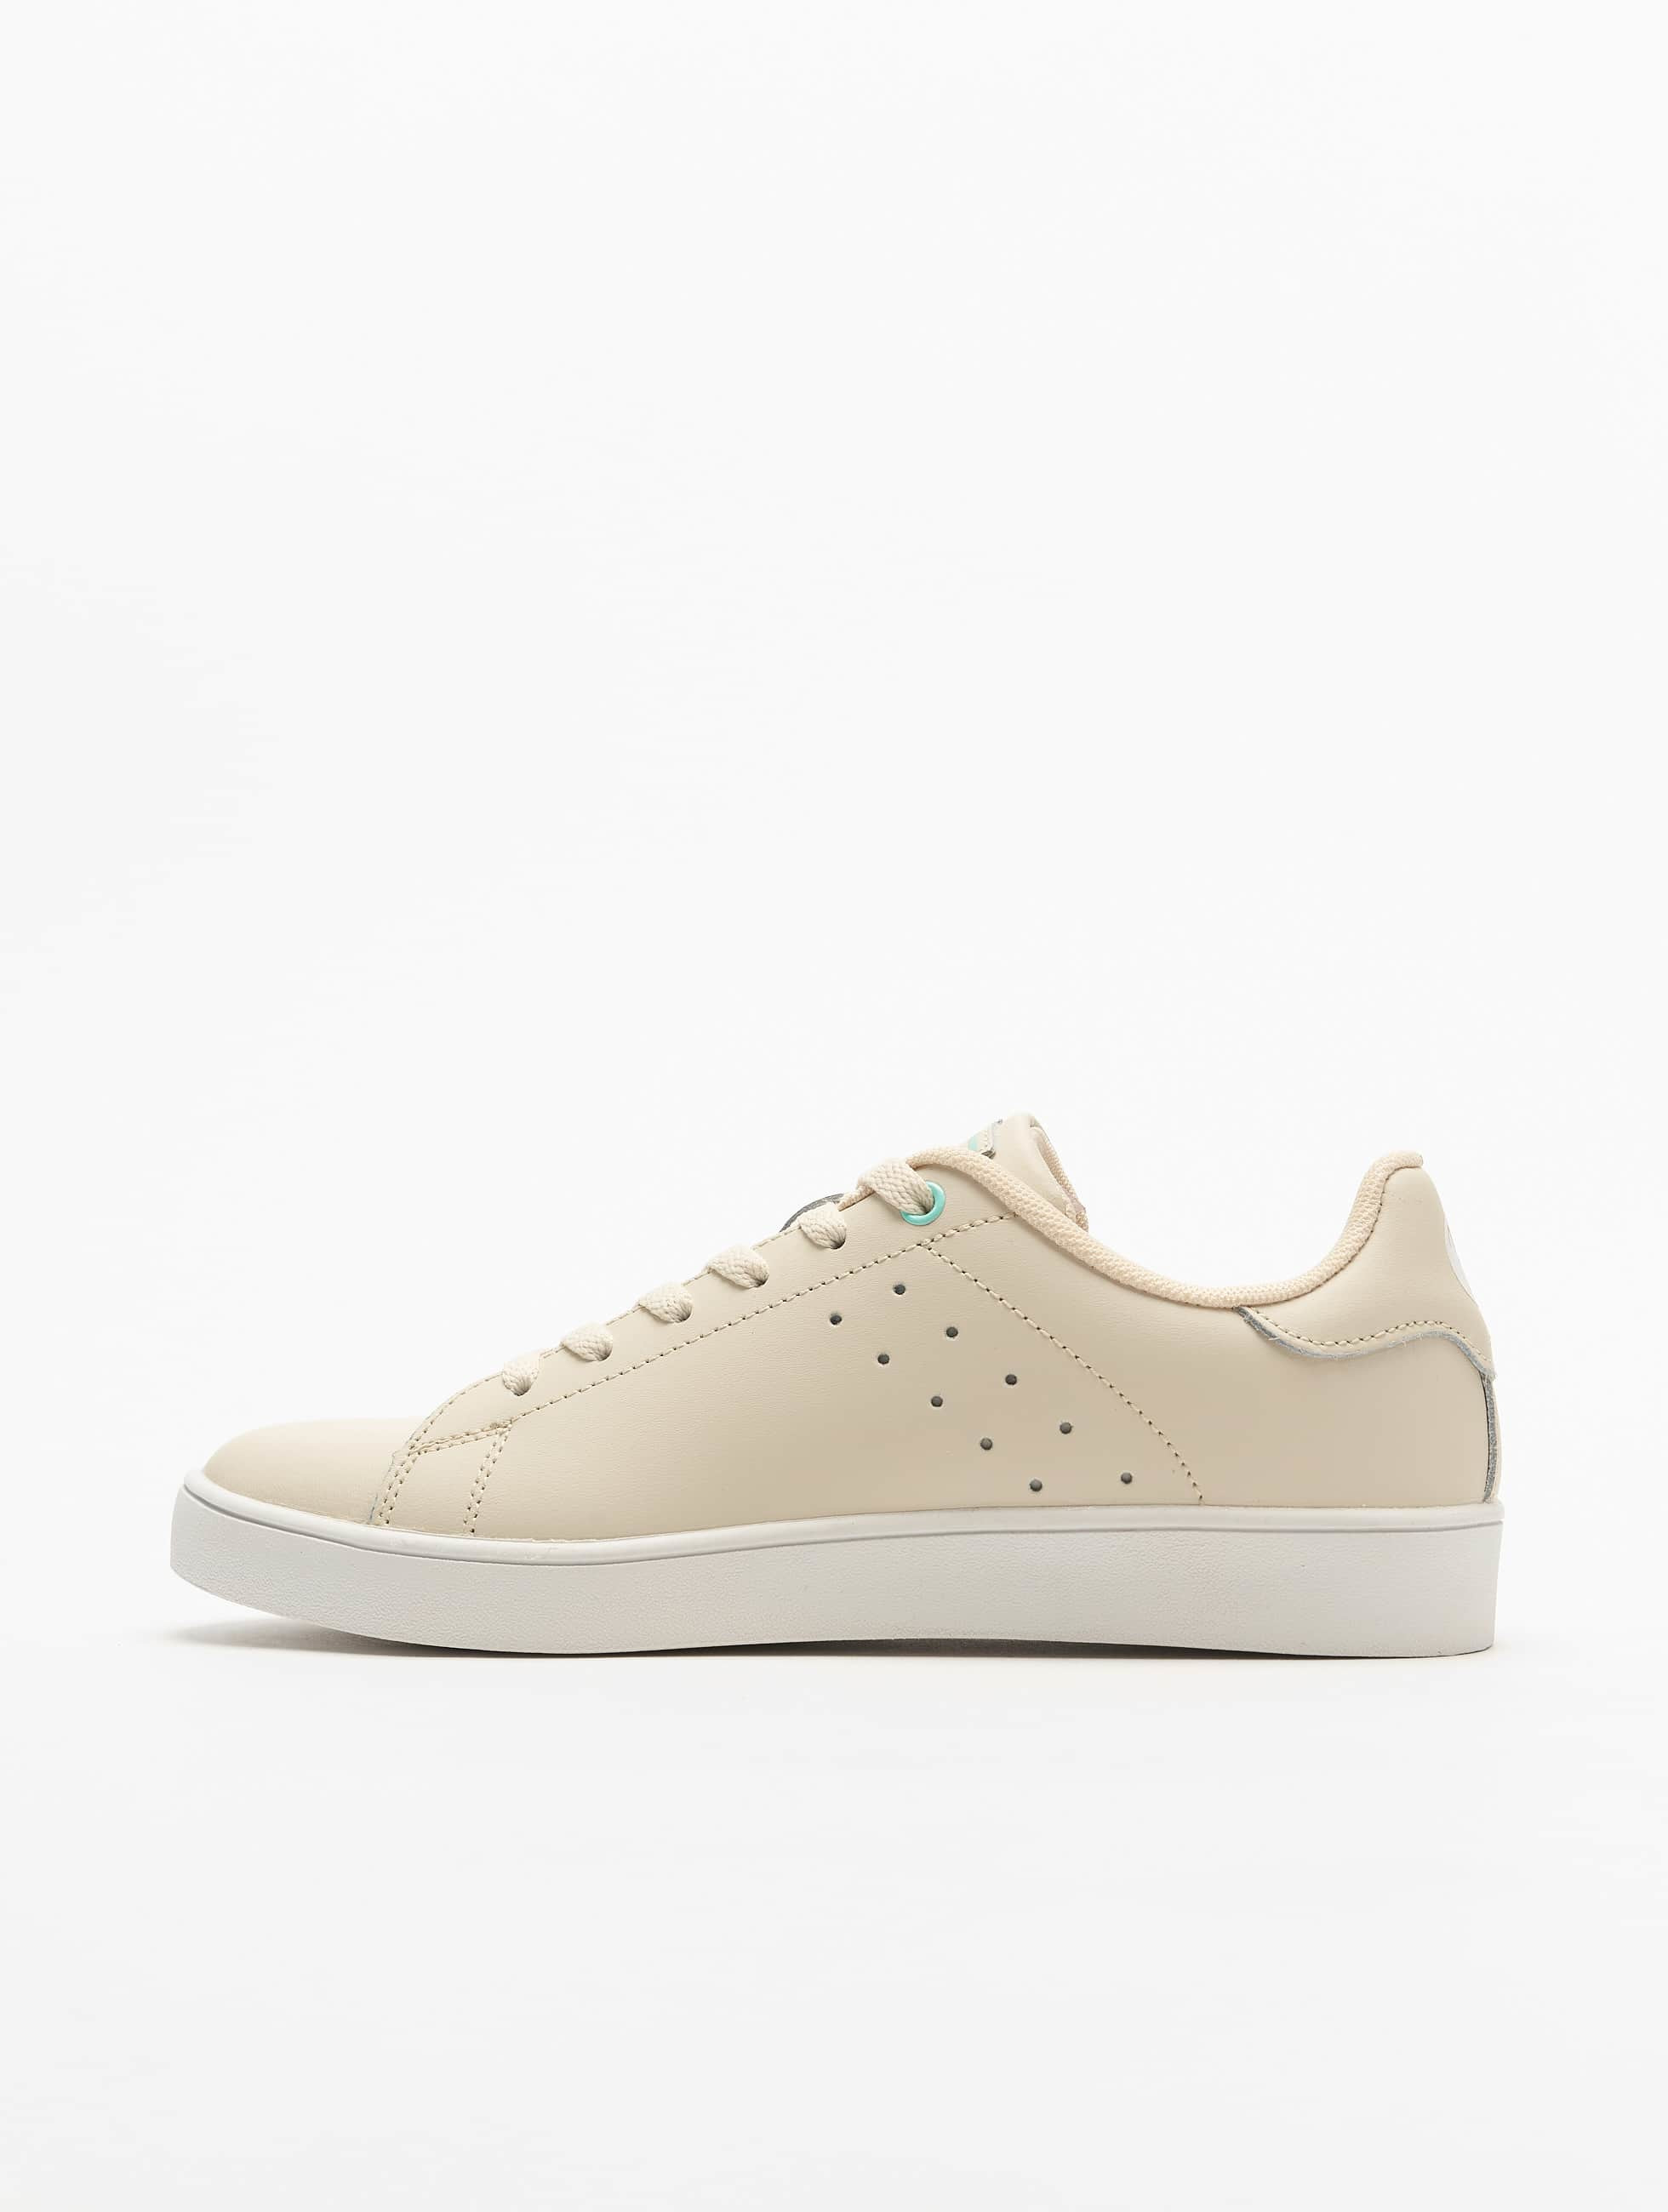 Just Rhyse / Sneakers JR Tennis in beige 41